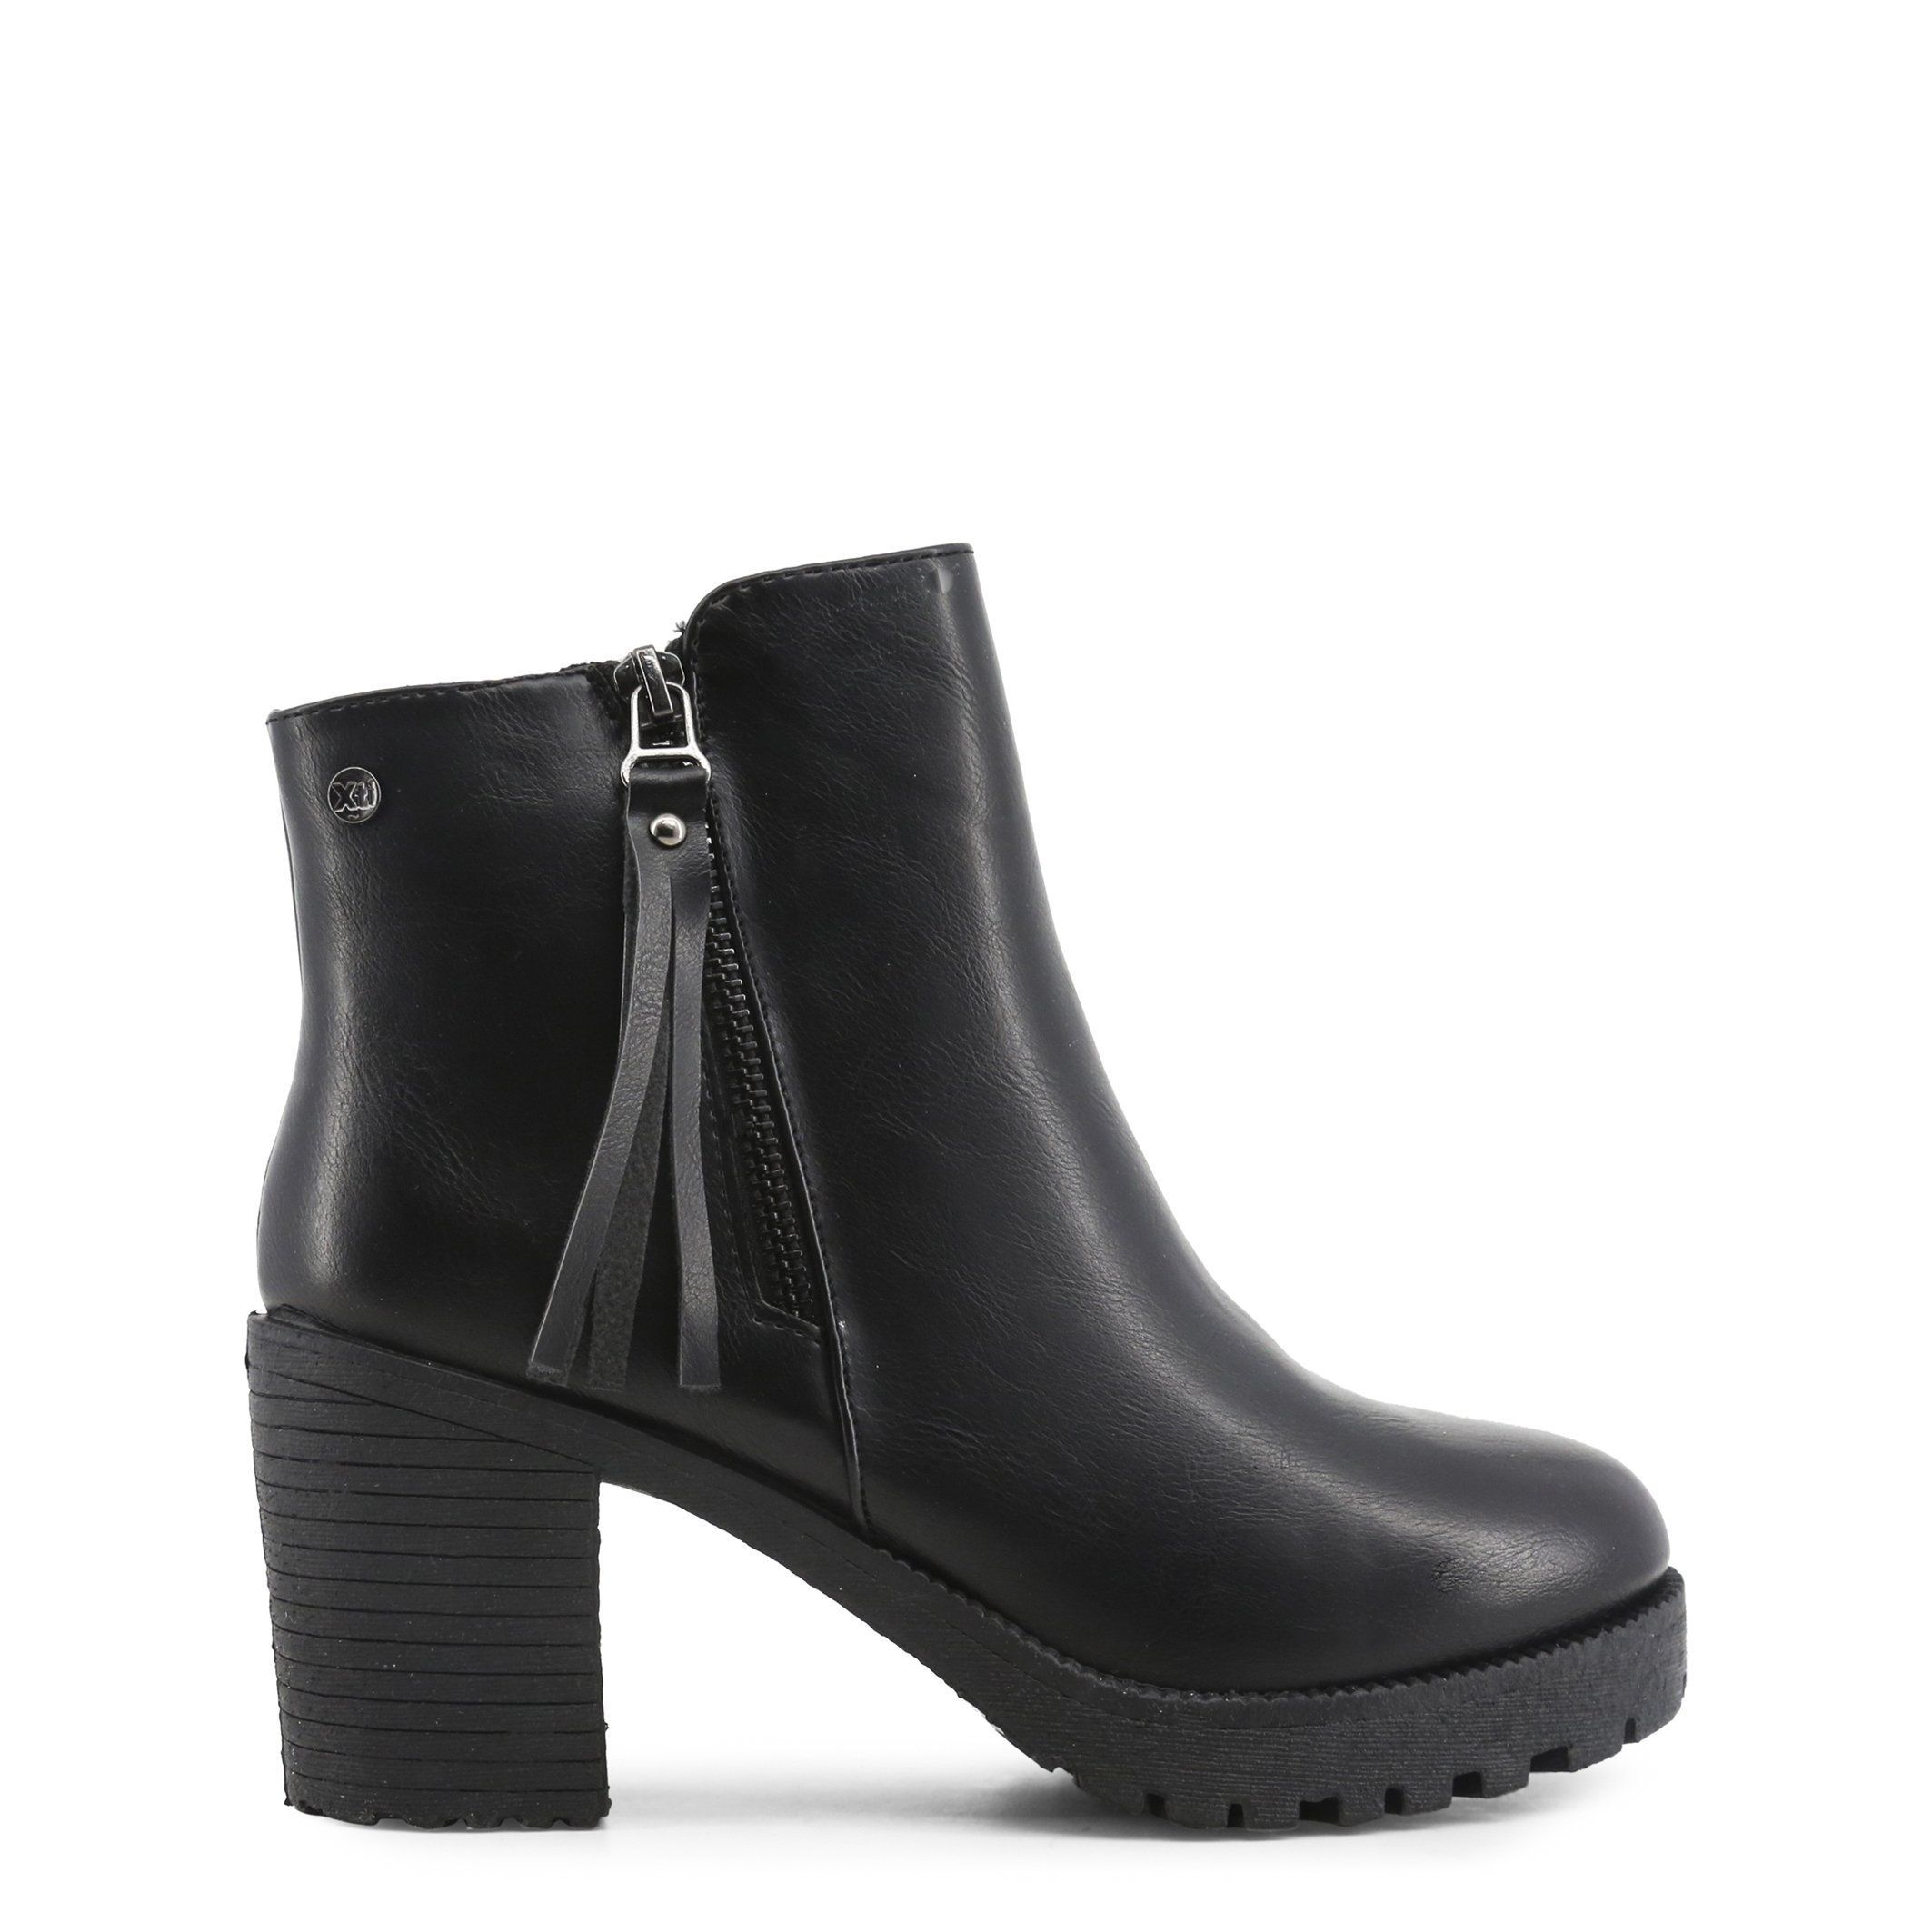 94e5d8dc Xti Ankle Boots With Tassel Zipper And Chunky Heels In Classic Black - 33859